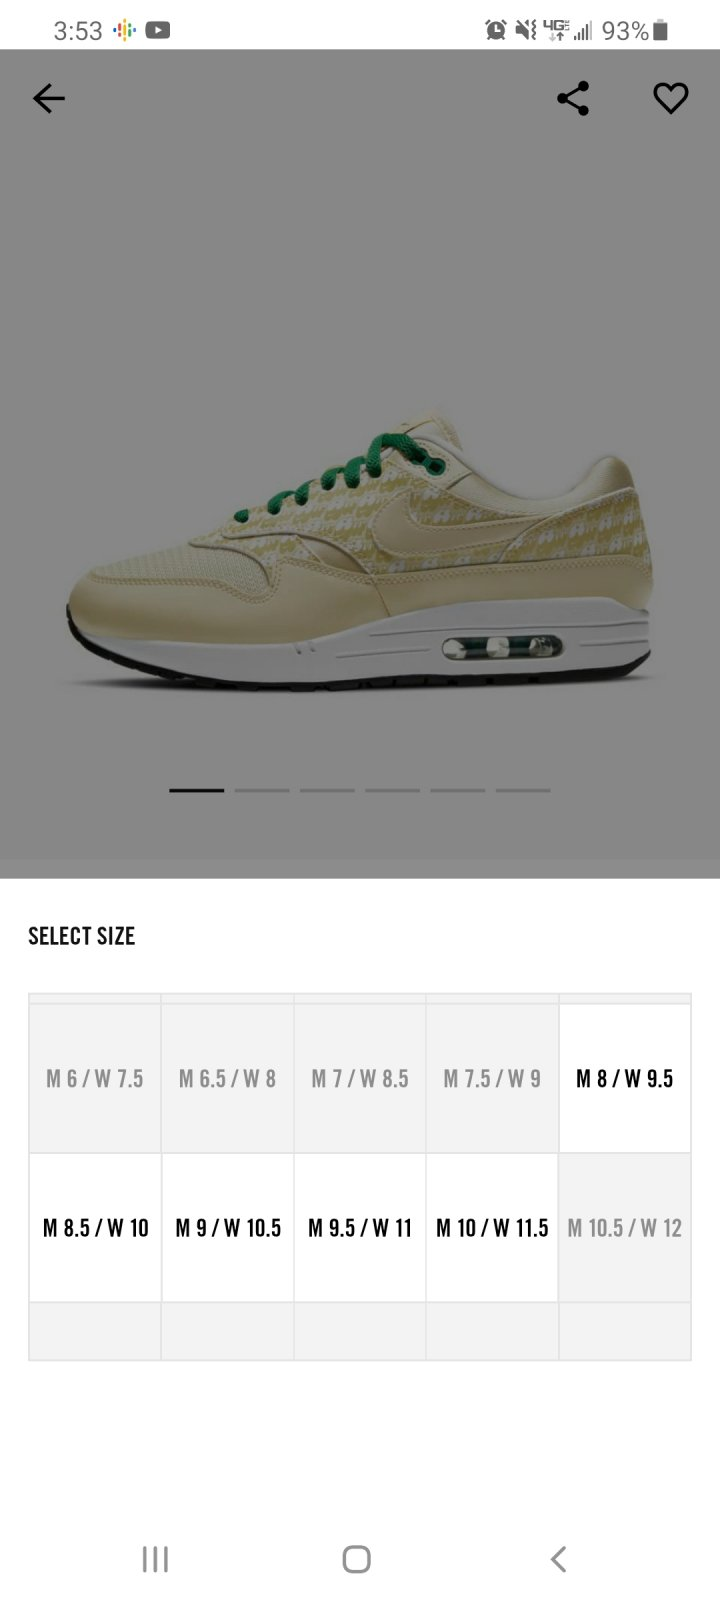 Screenshot_20201125-155319_SNKRS.jpg